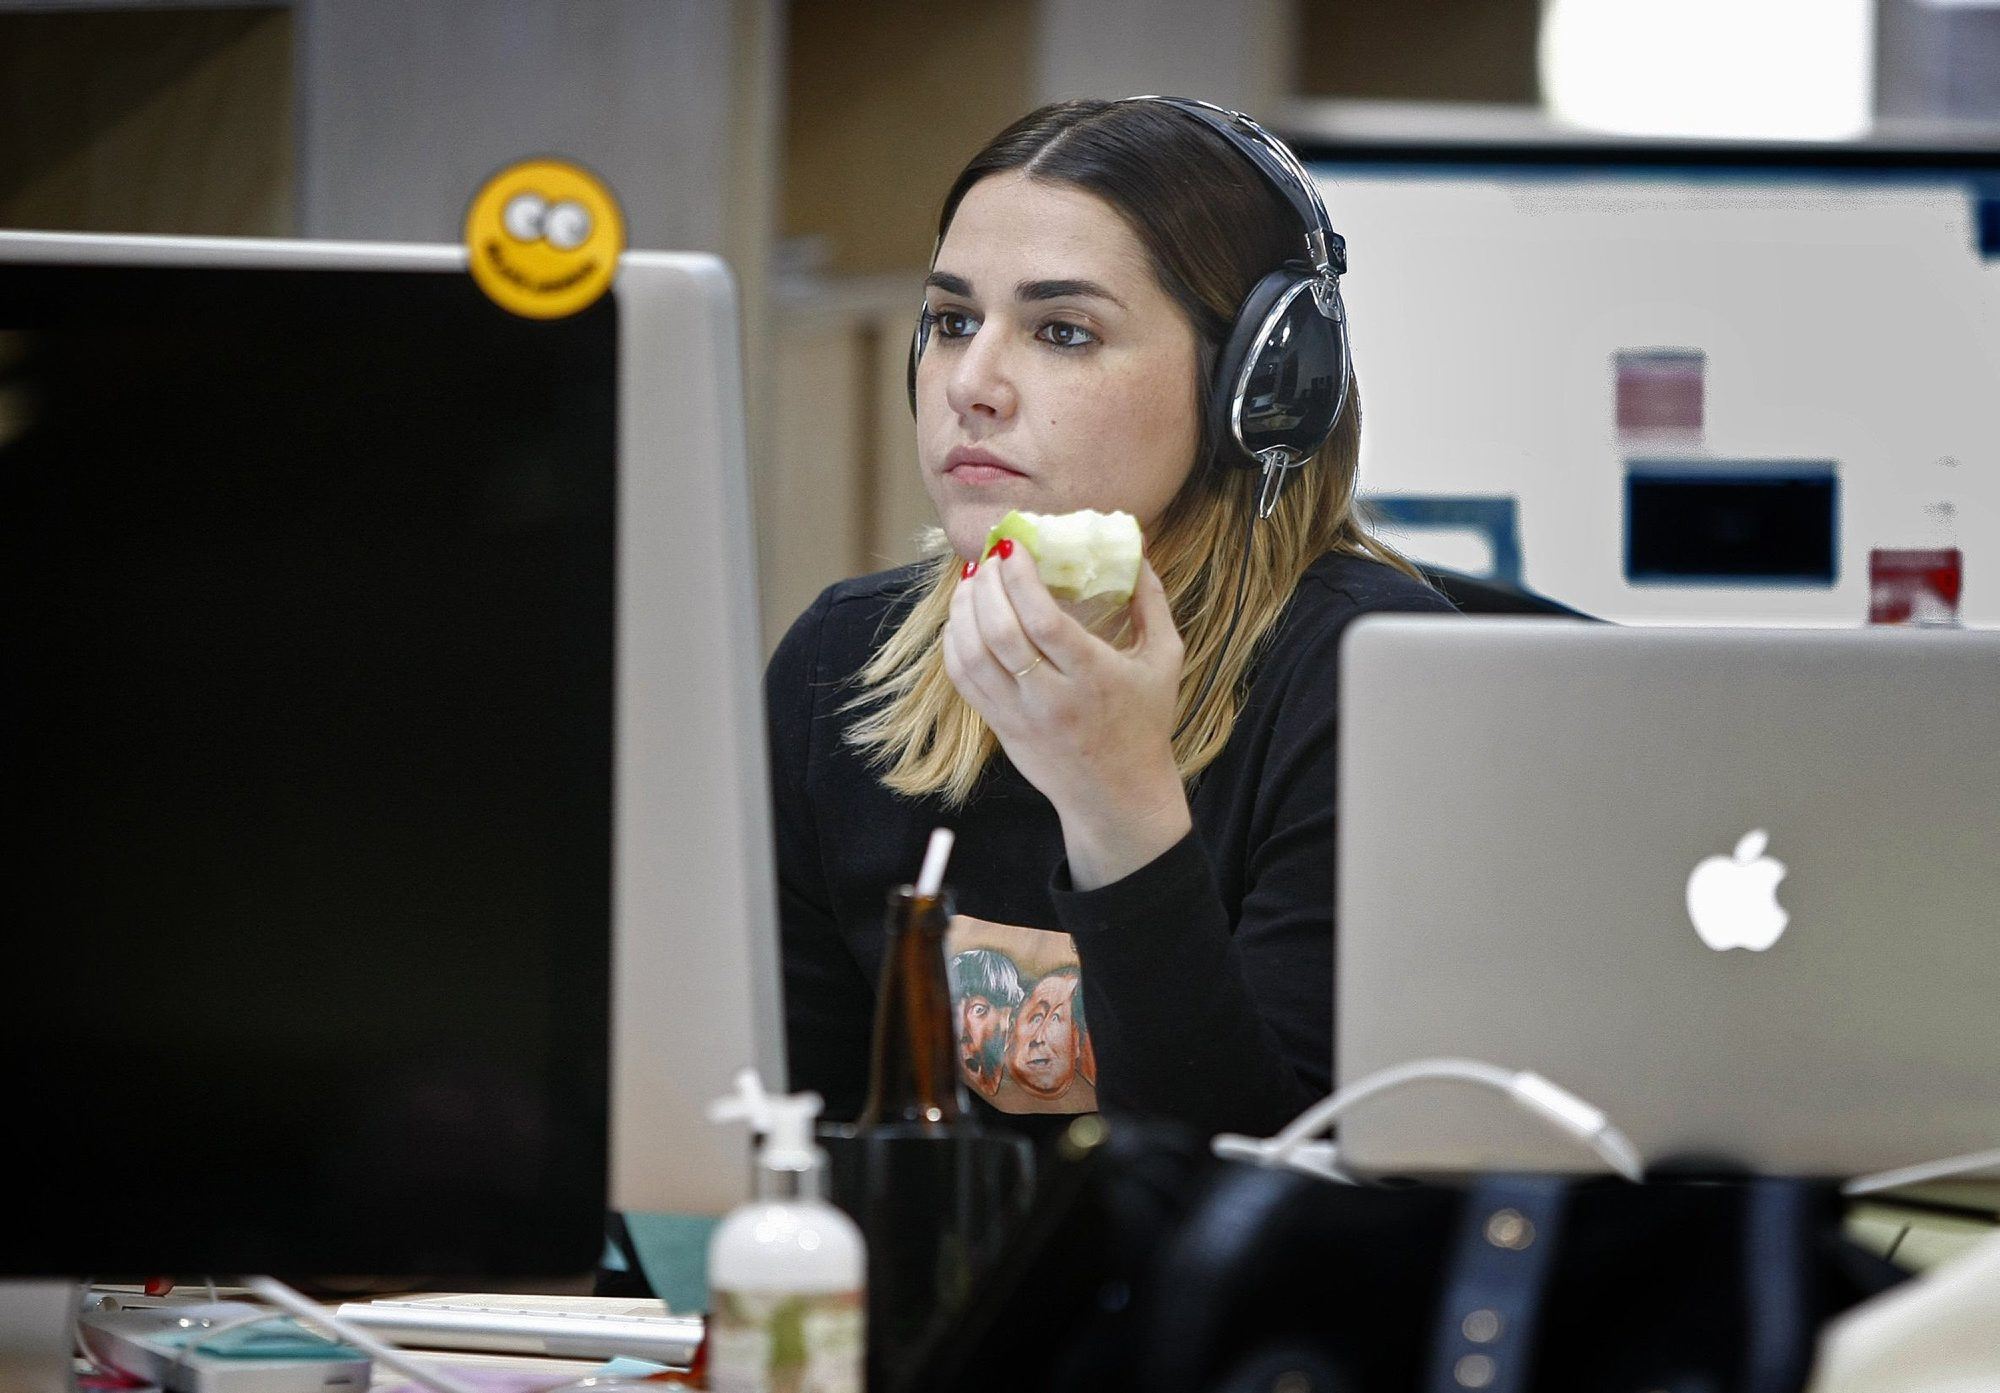 Kelly King munches on an apple while working at her desk at Stance, a designer sock company in San Clemente, Calif. The company provides healthy snacks for employees and has a gym, skateboard bowl, basketball court and table games.